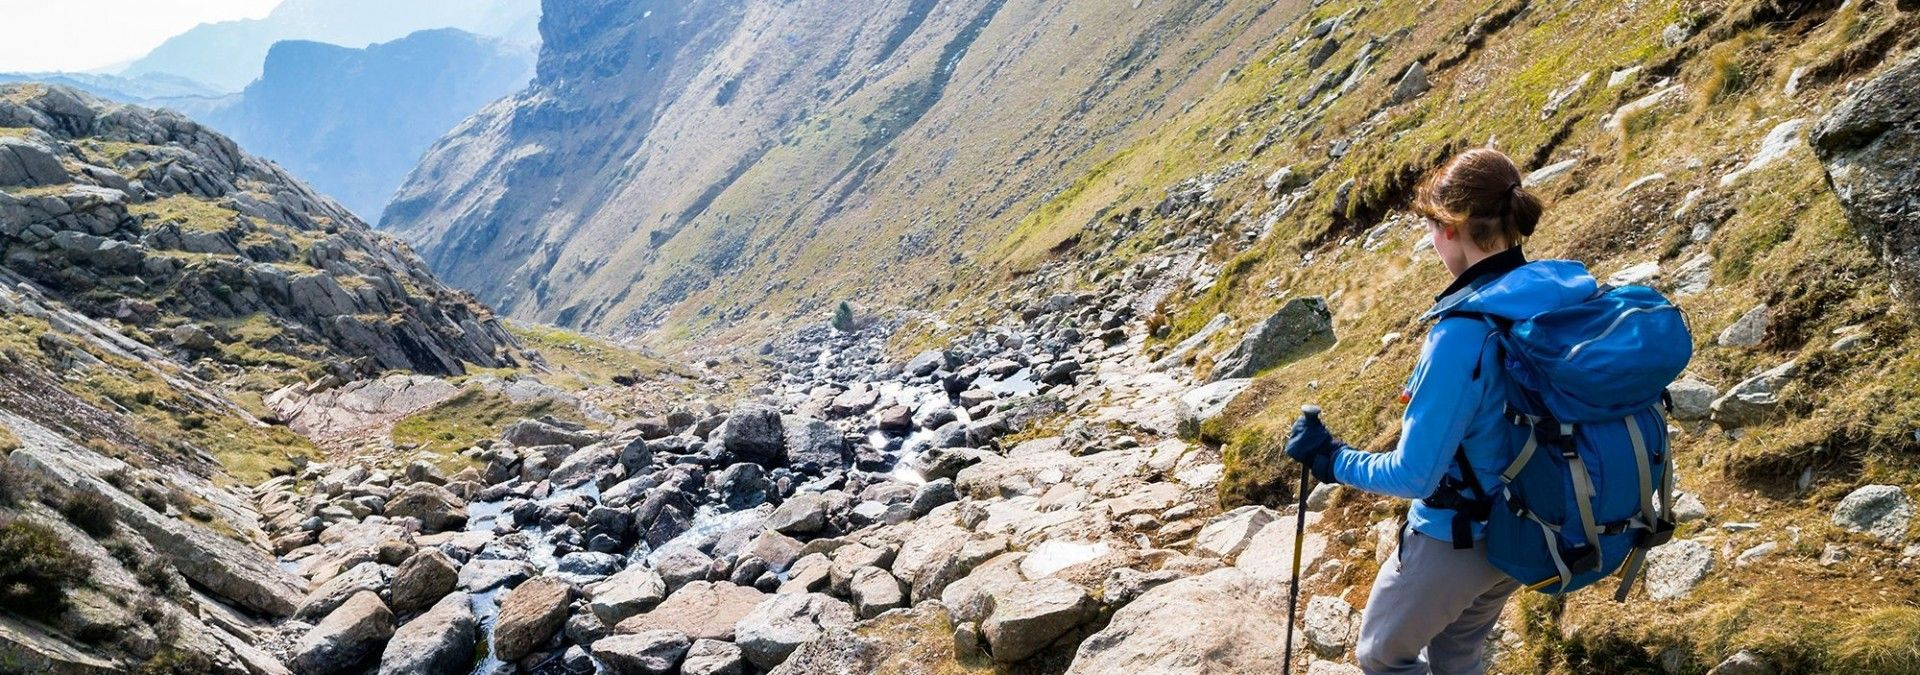 Trekking with poles over rocks in the Lake District